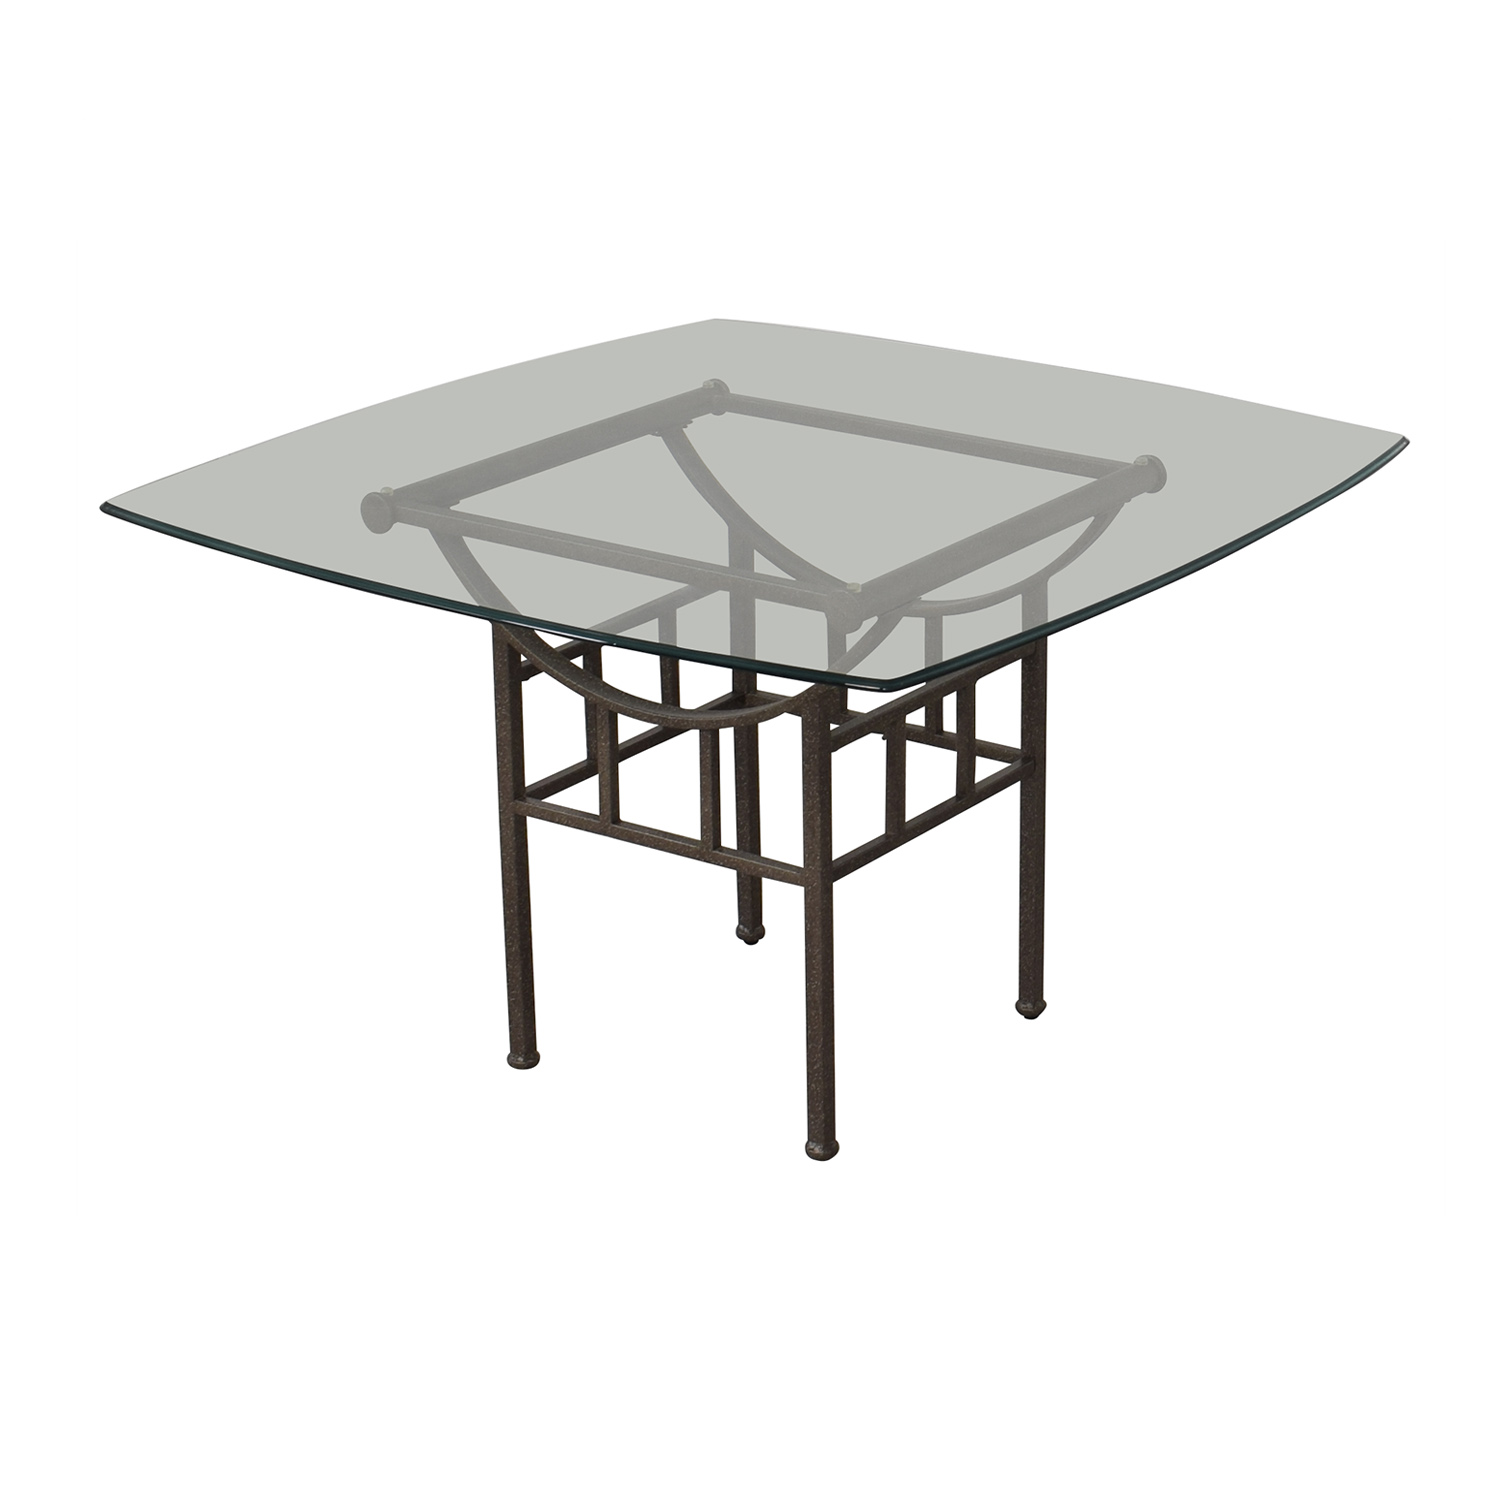 Macy's Macy's Dining Table second hand